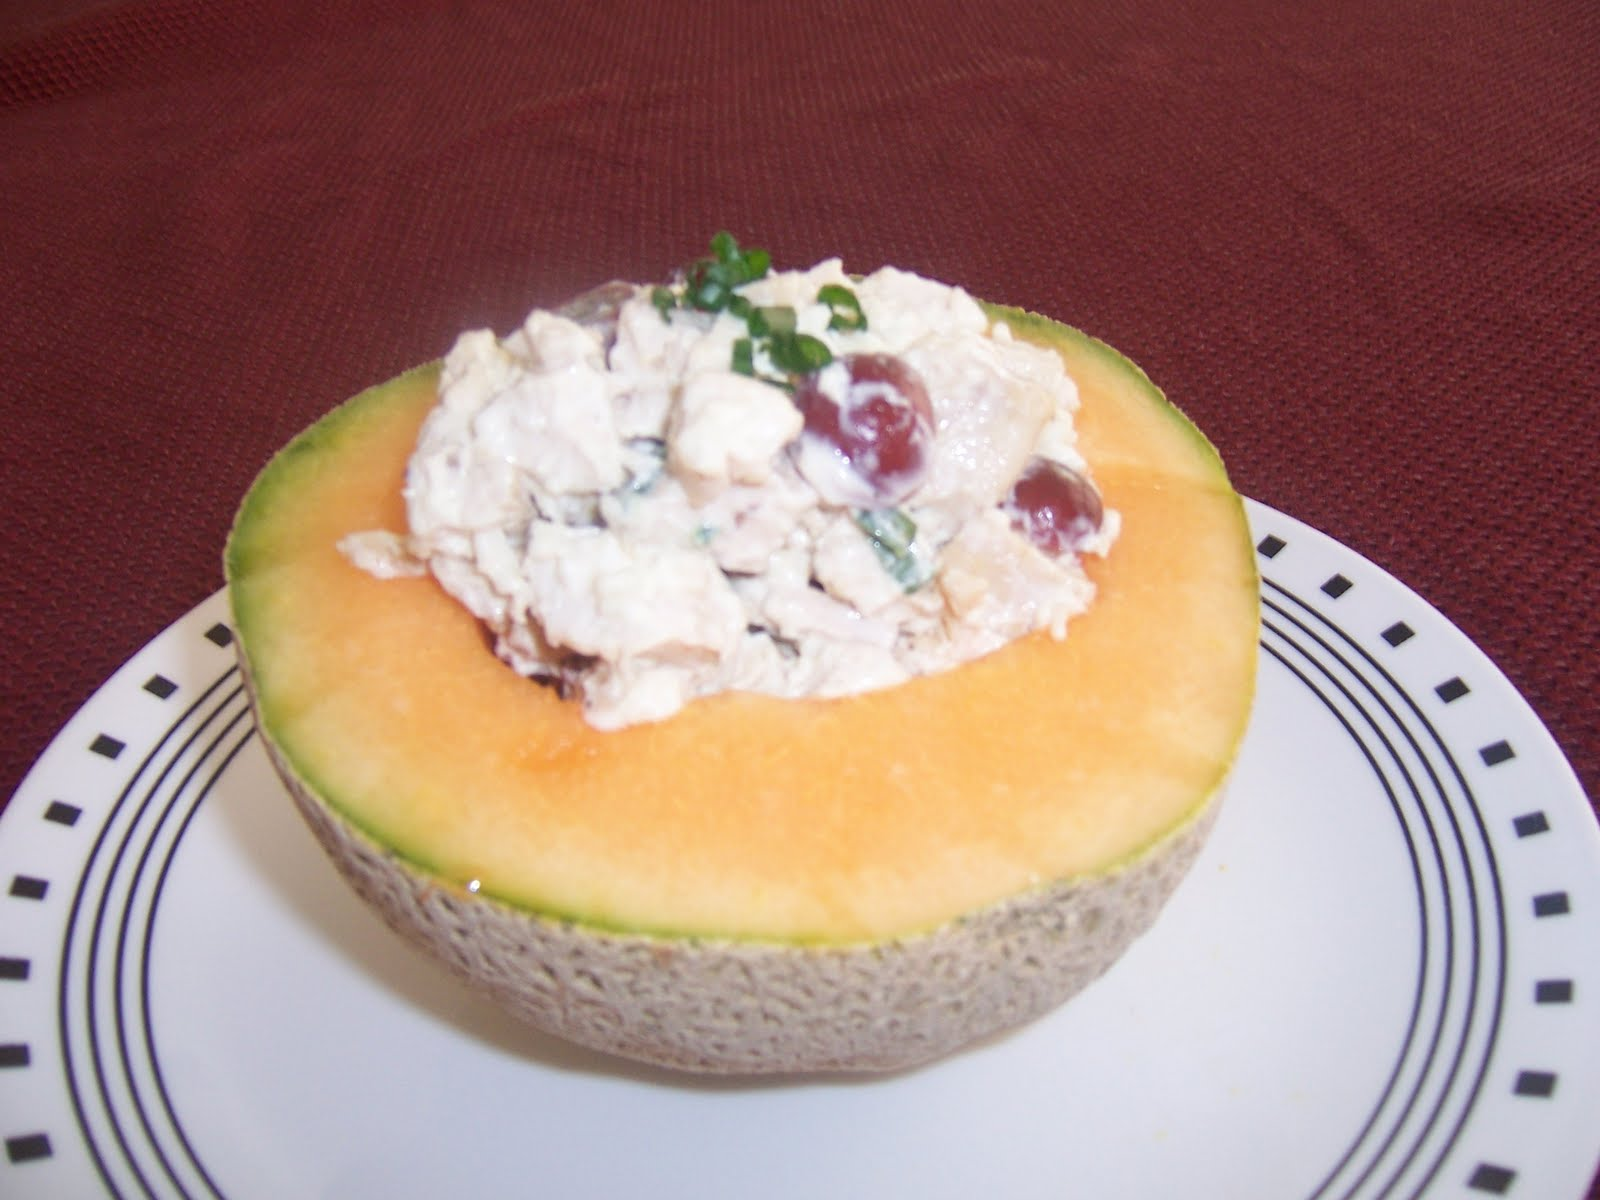 Stuffed Cantaloupe